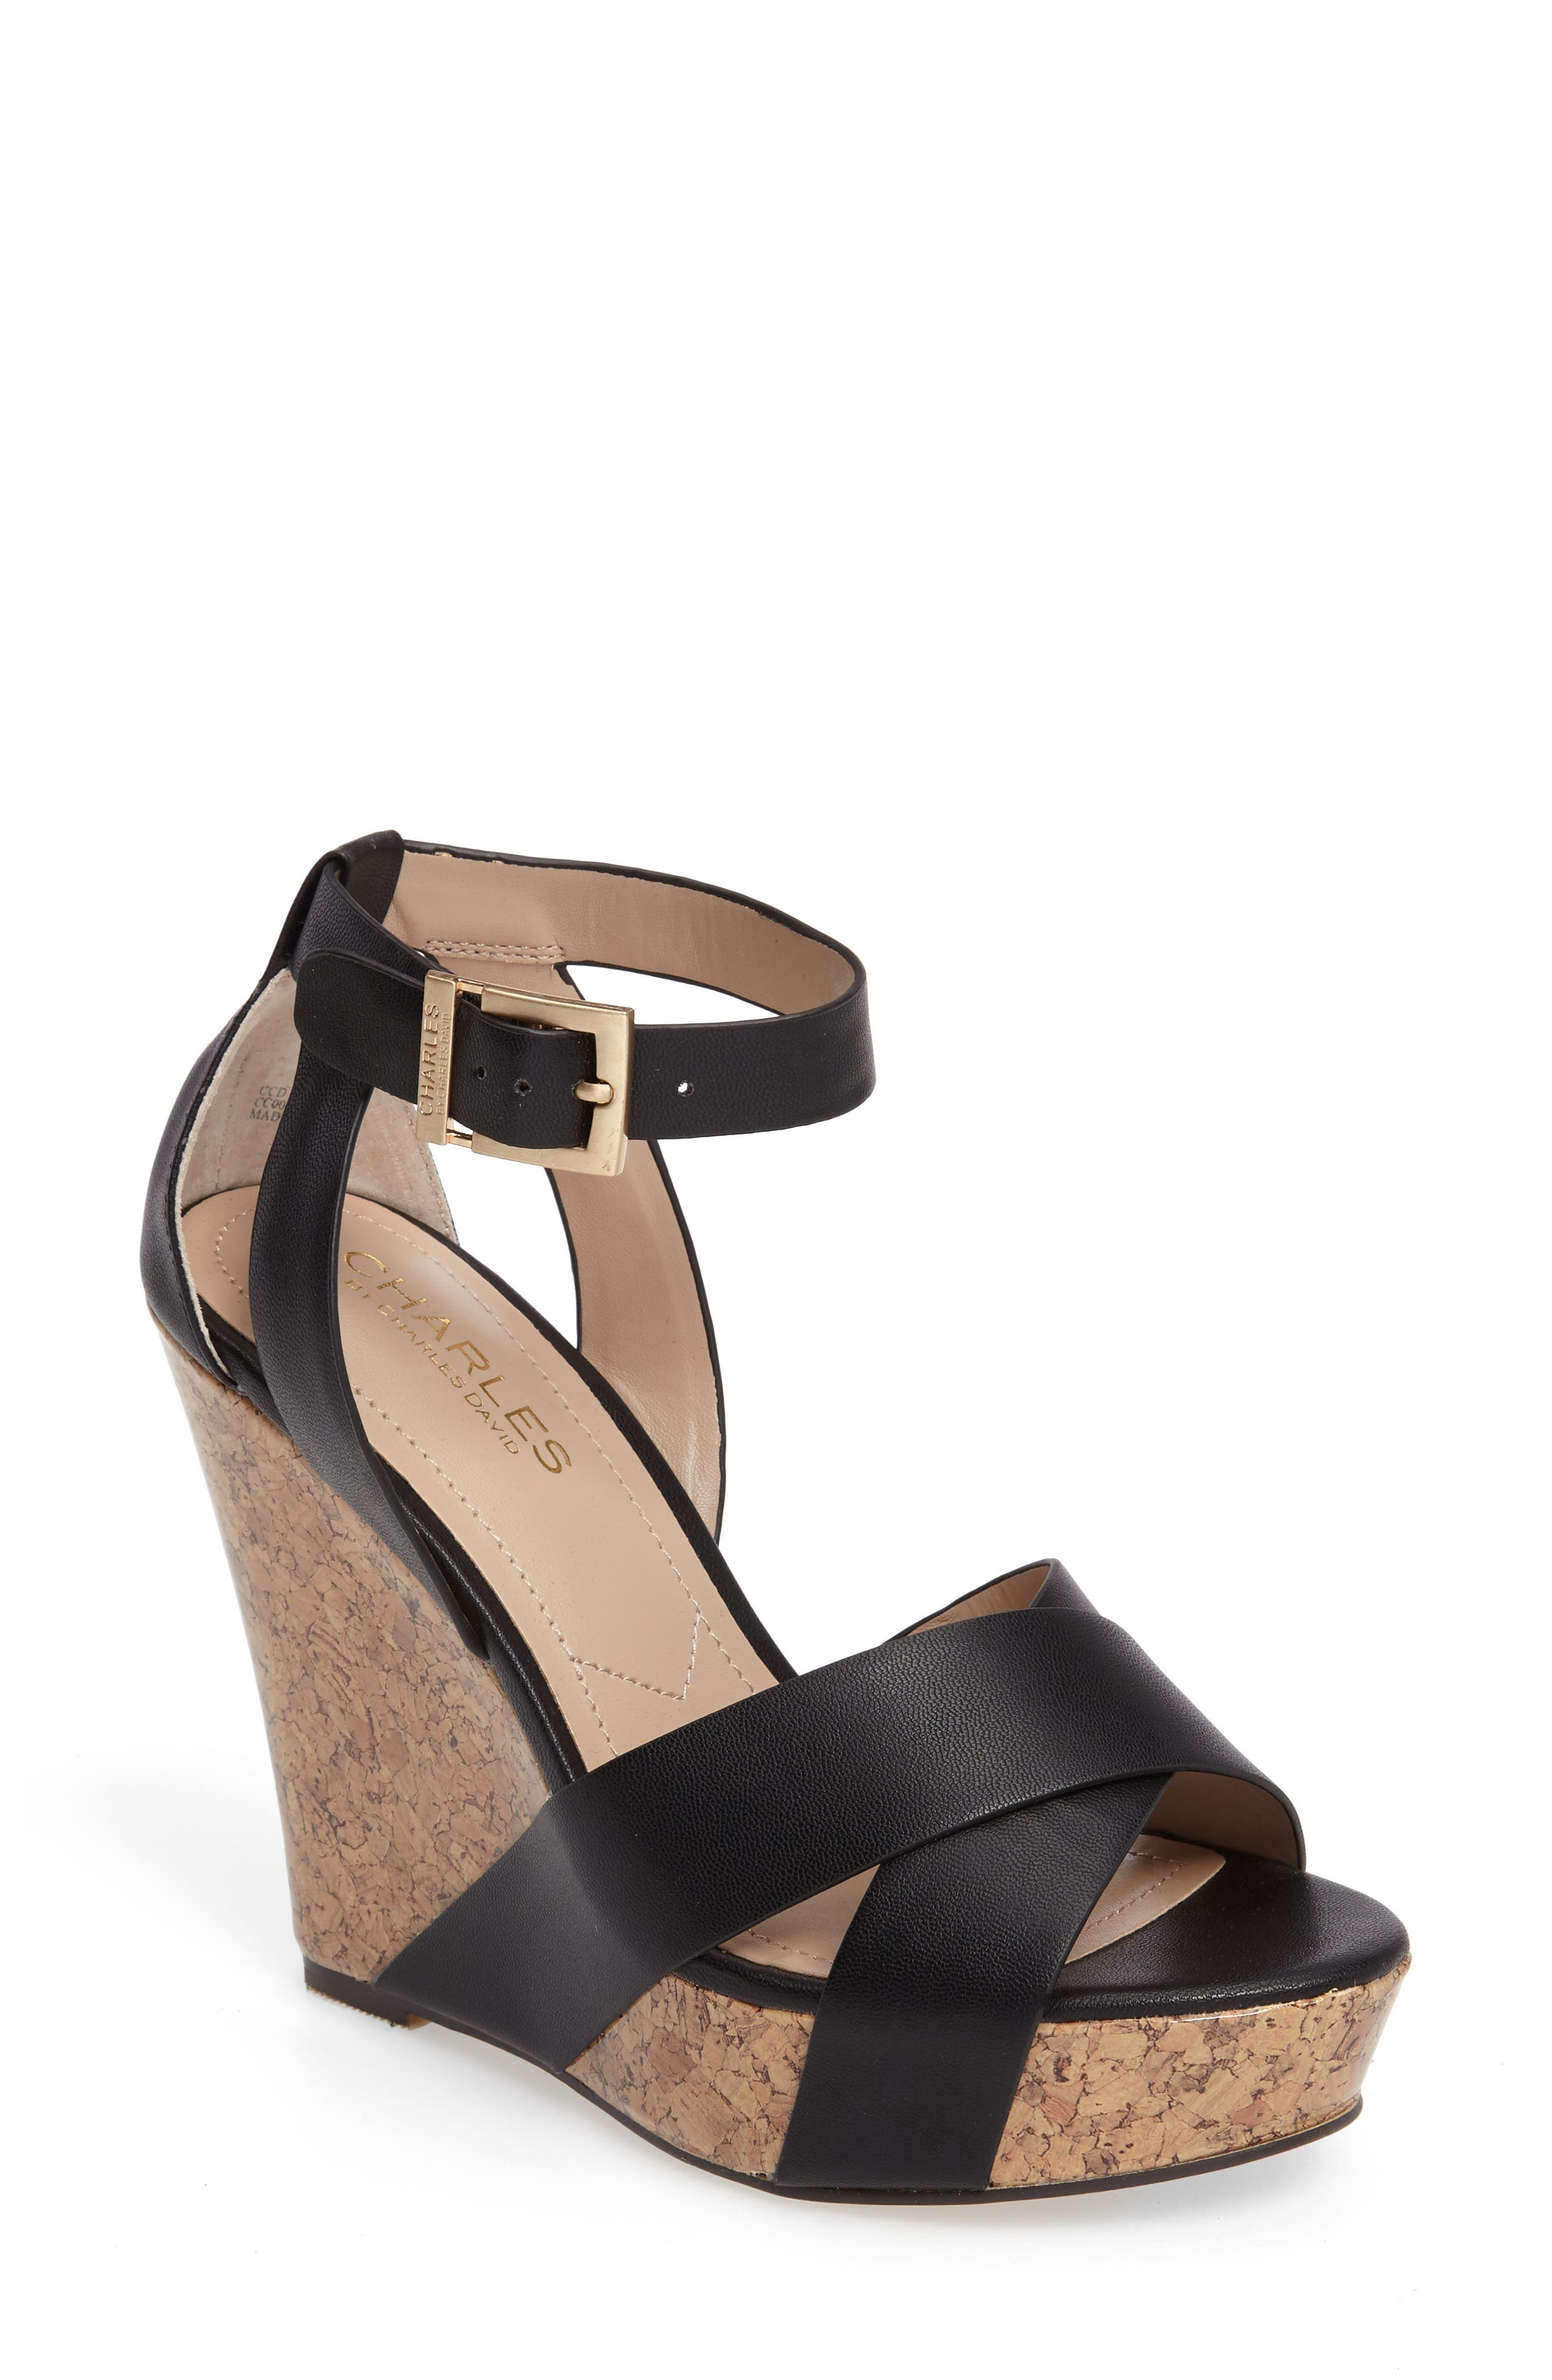 Amsterdam Platform Wedge Sandal,                         Main,                         color,